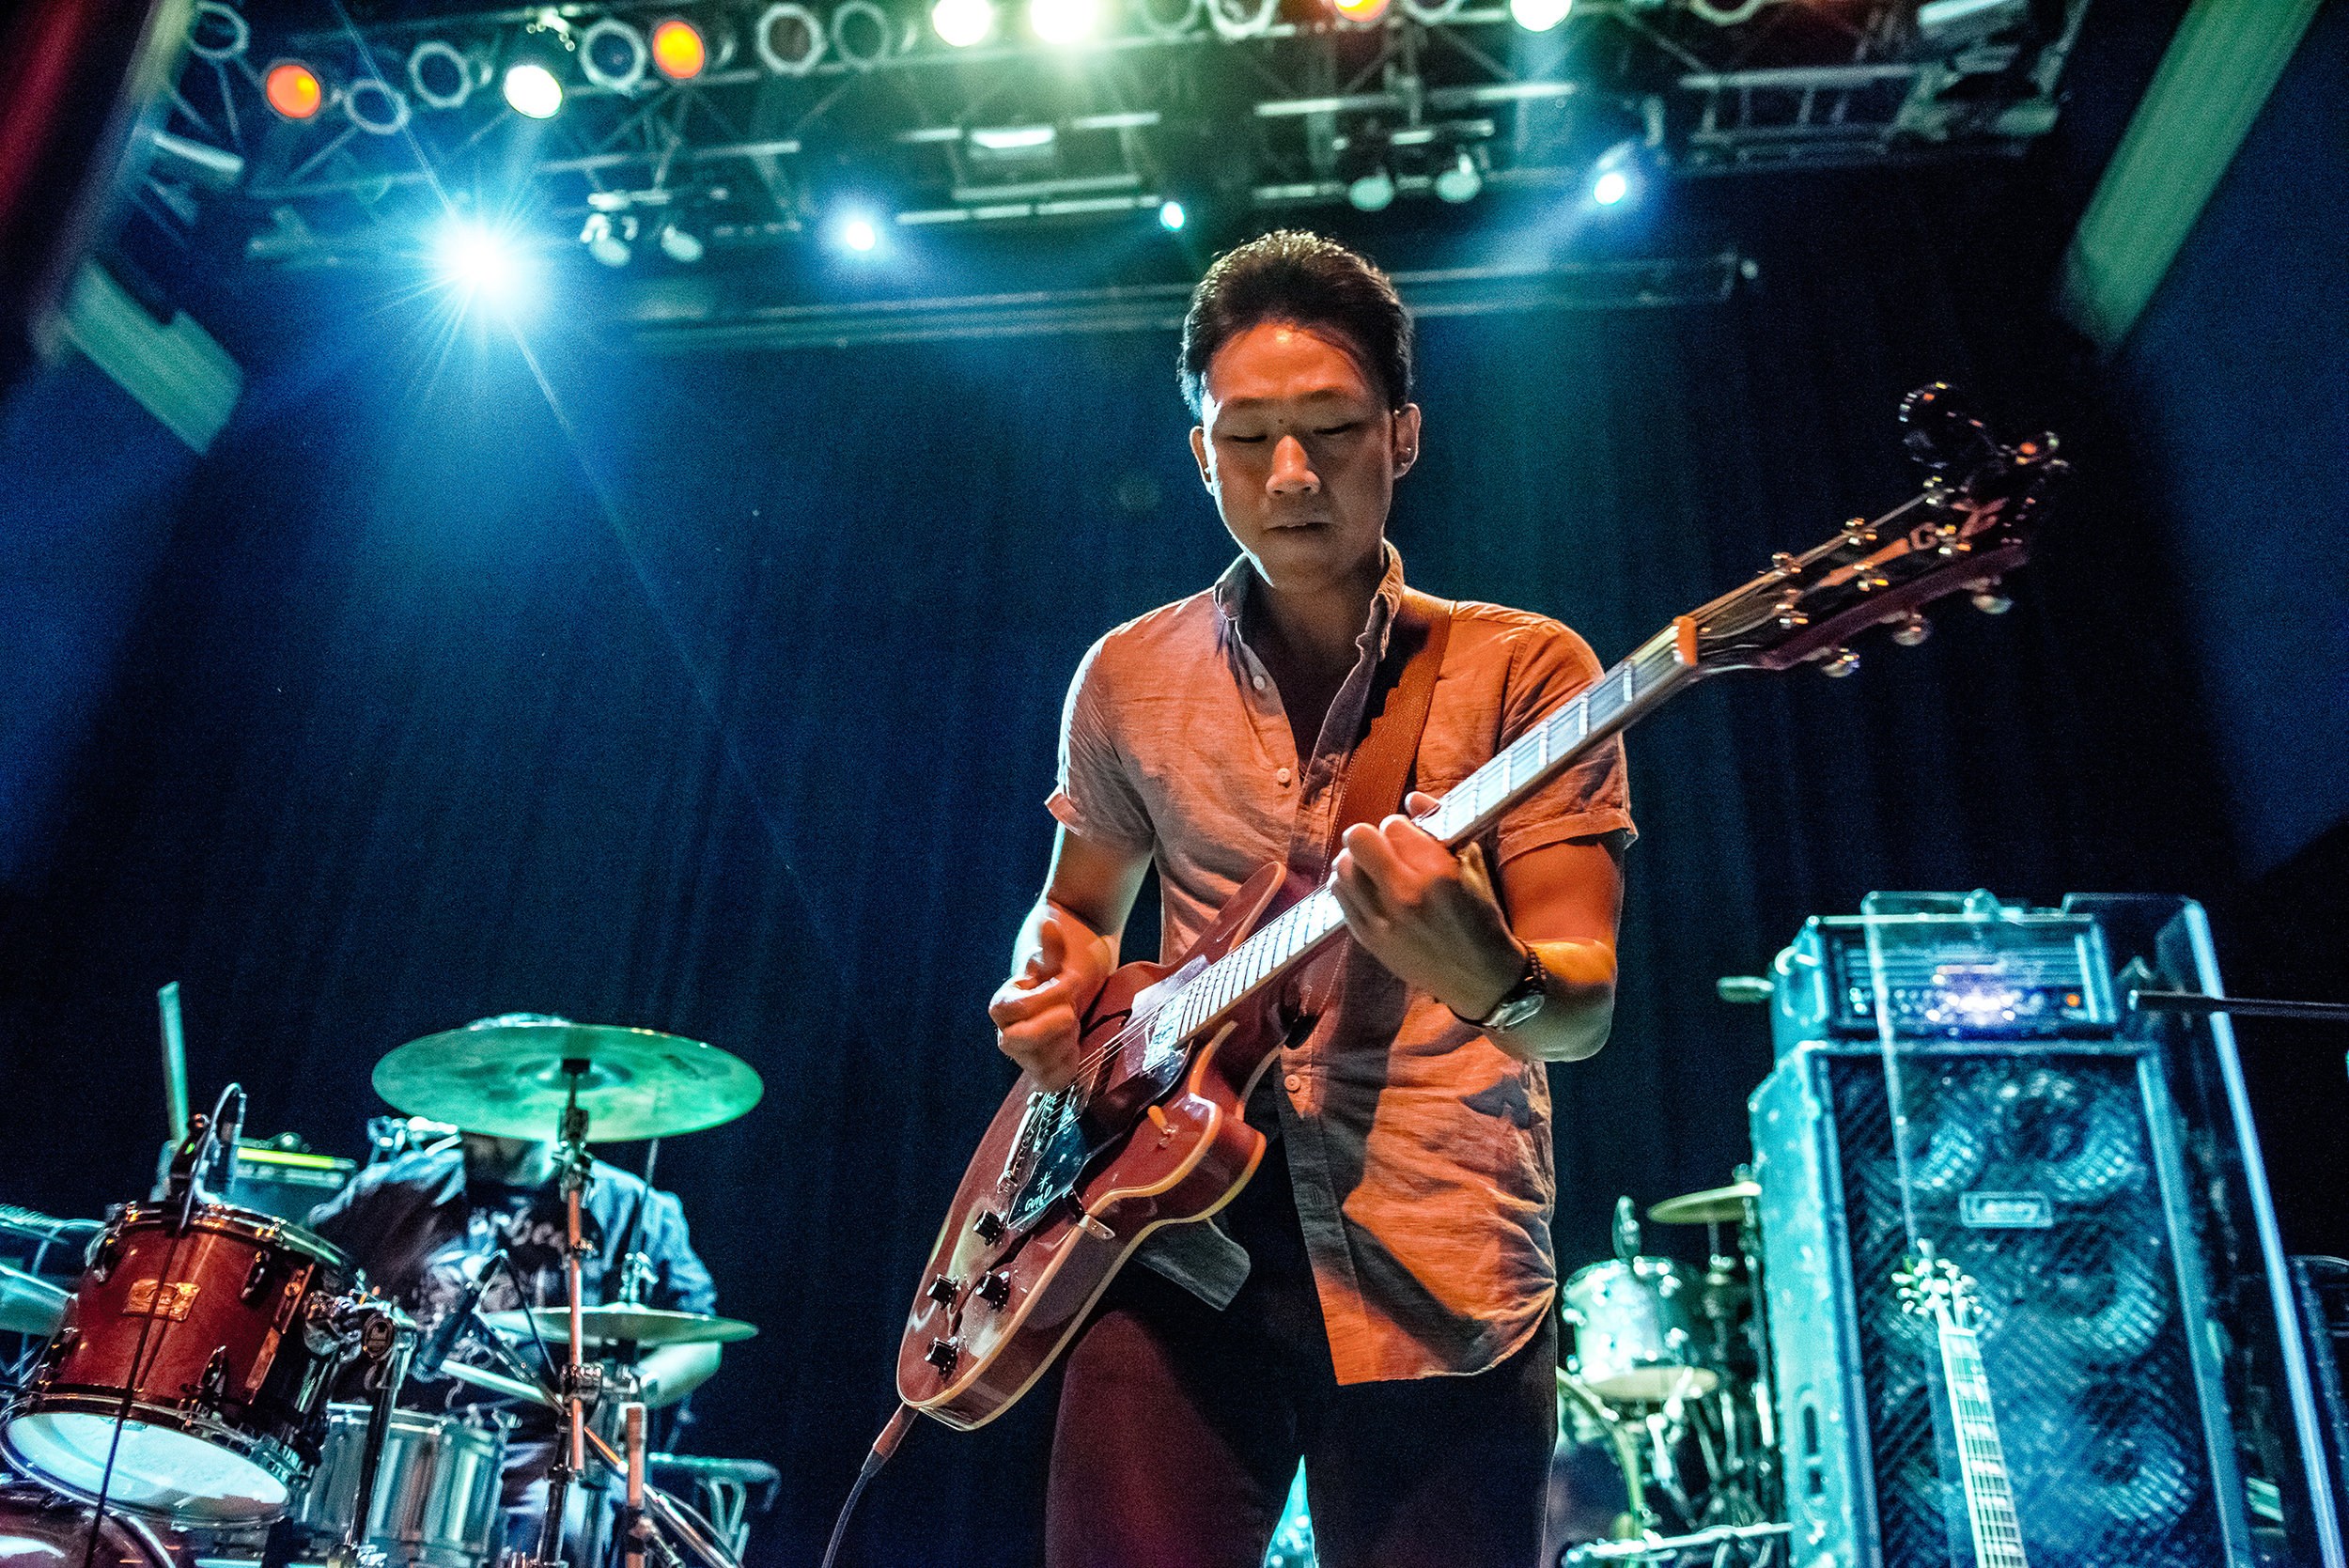 Skyline Hotel - 930 Club - Jon Lee 3.jpg